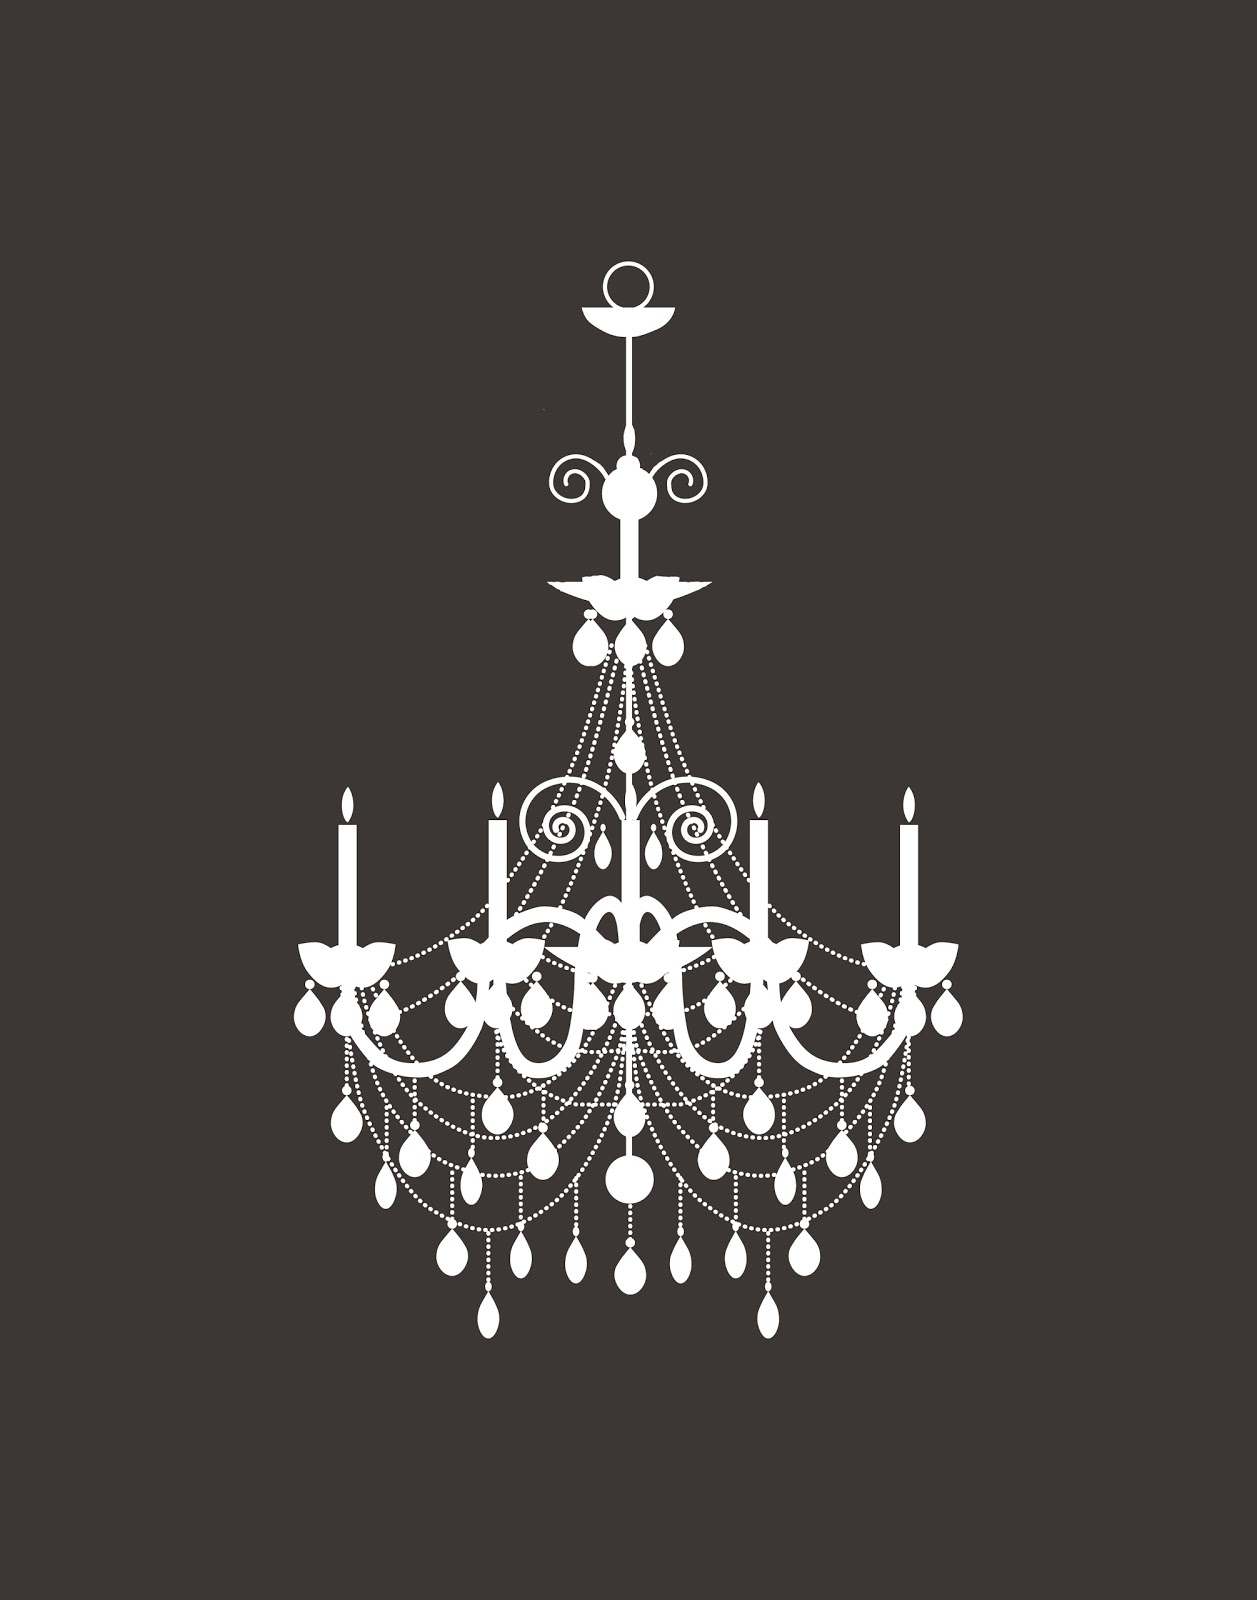 Marvelous I uve been working on a chandelier silhouette print for my daughter us room here it is